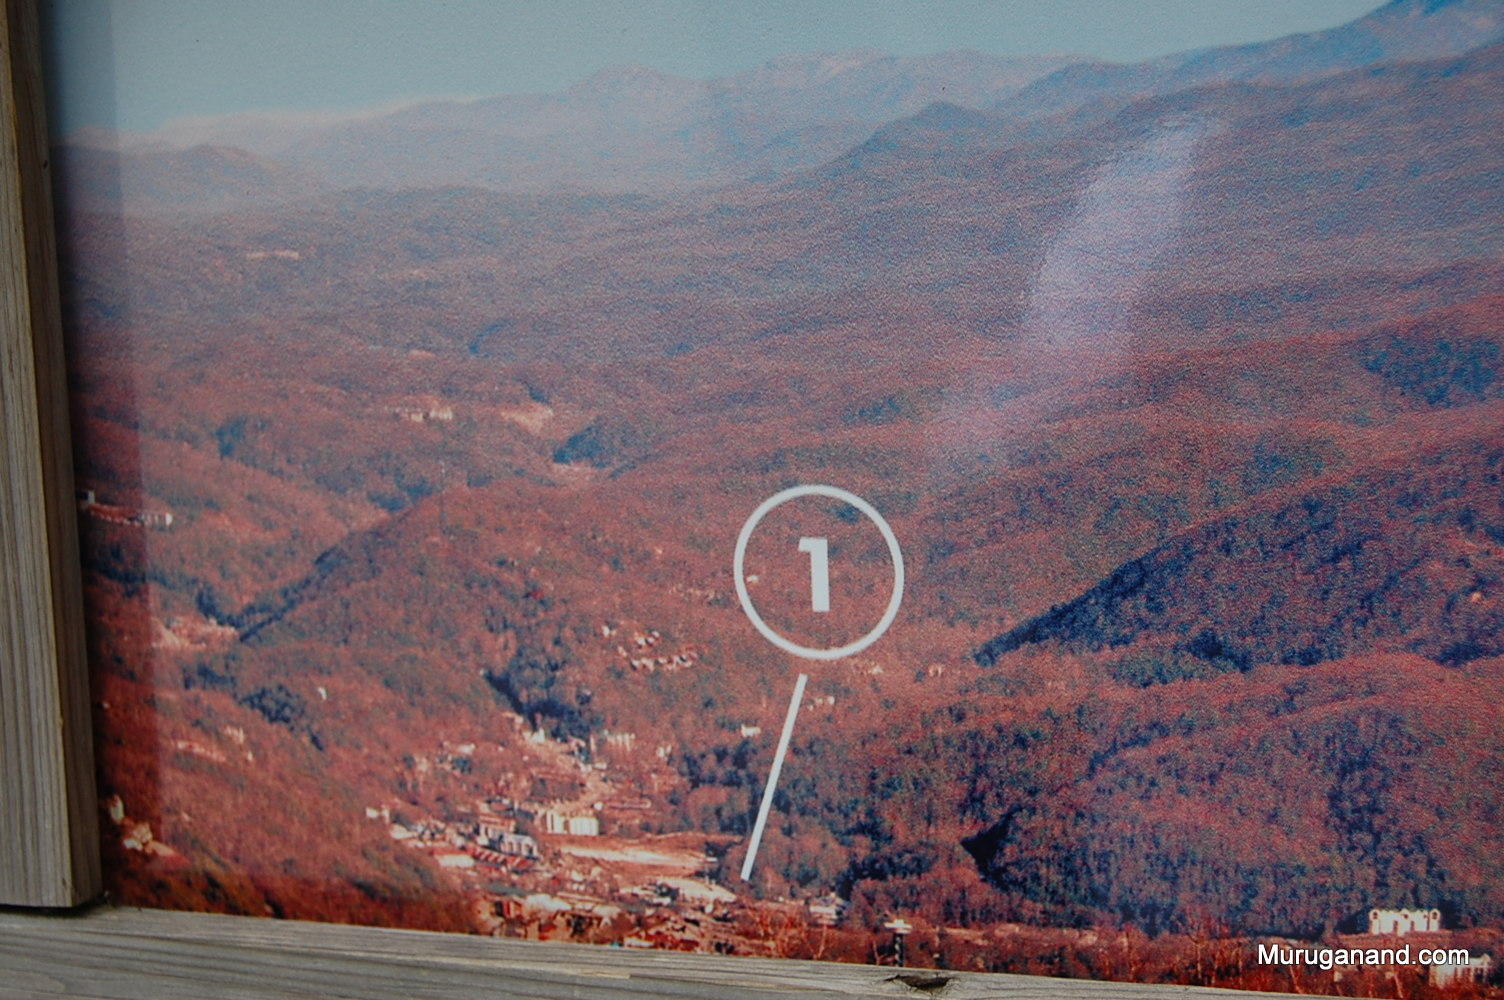 1. City of Gatlinburg in the picture